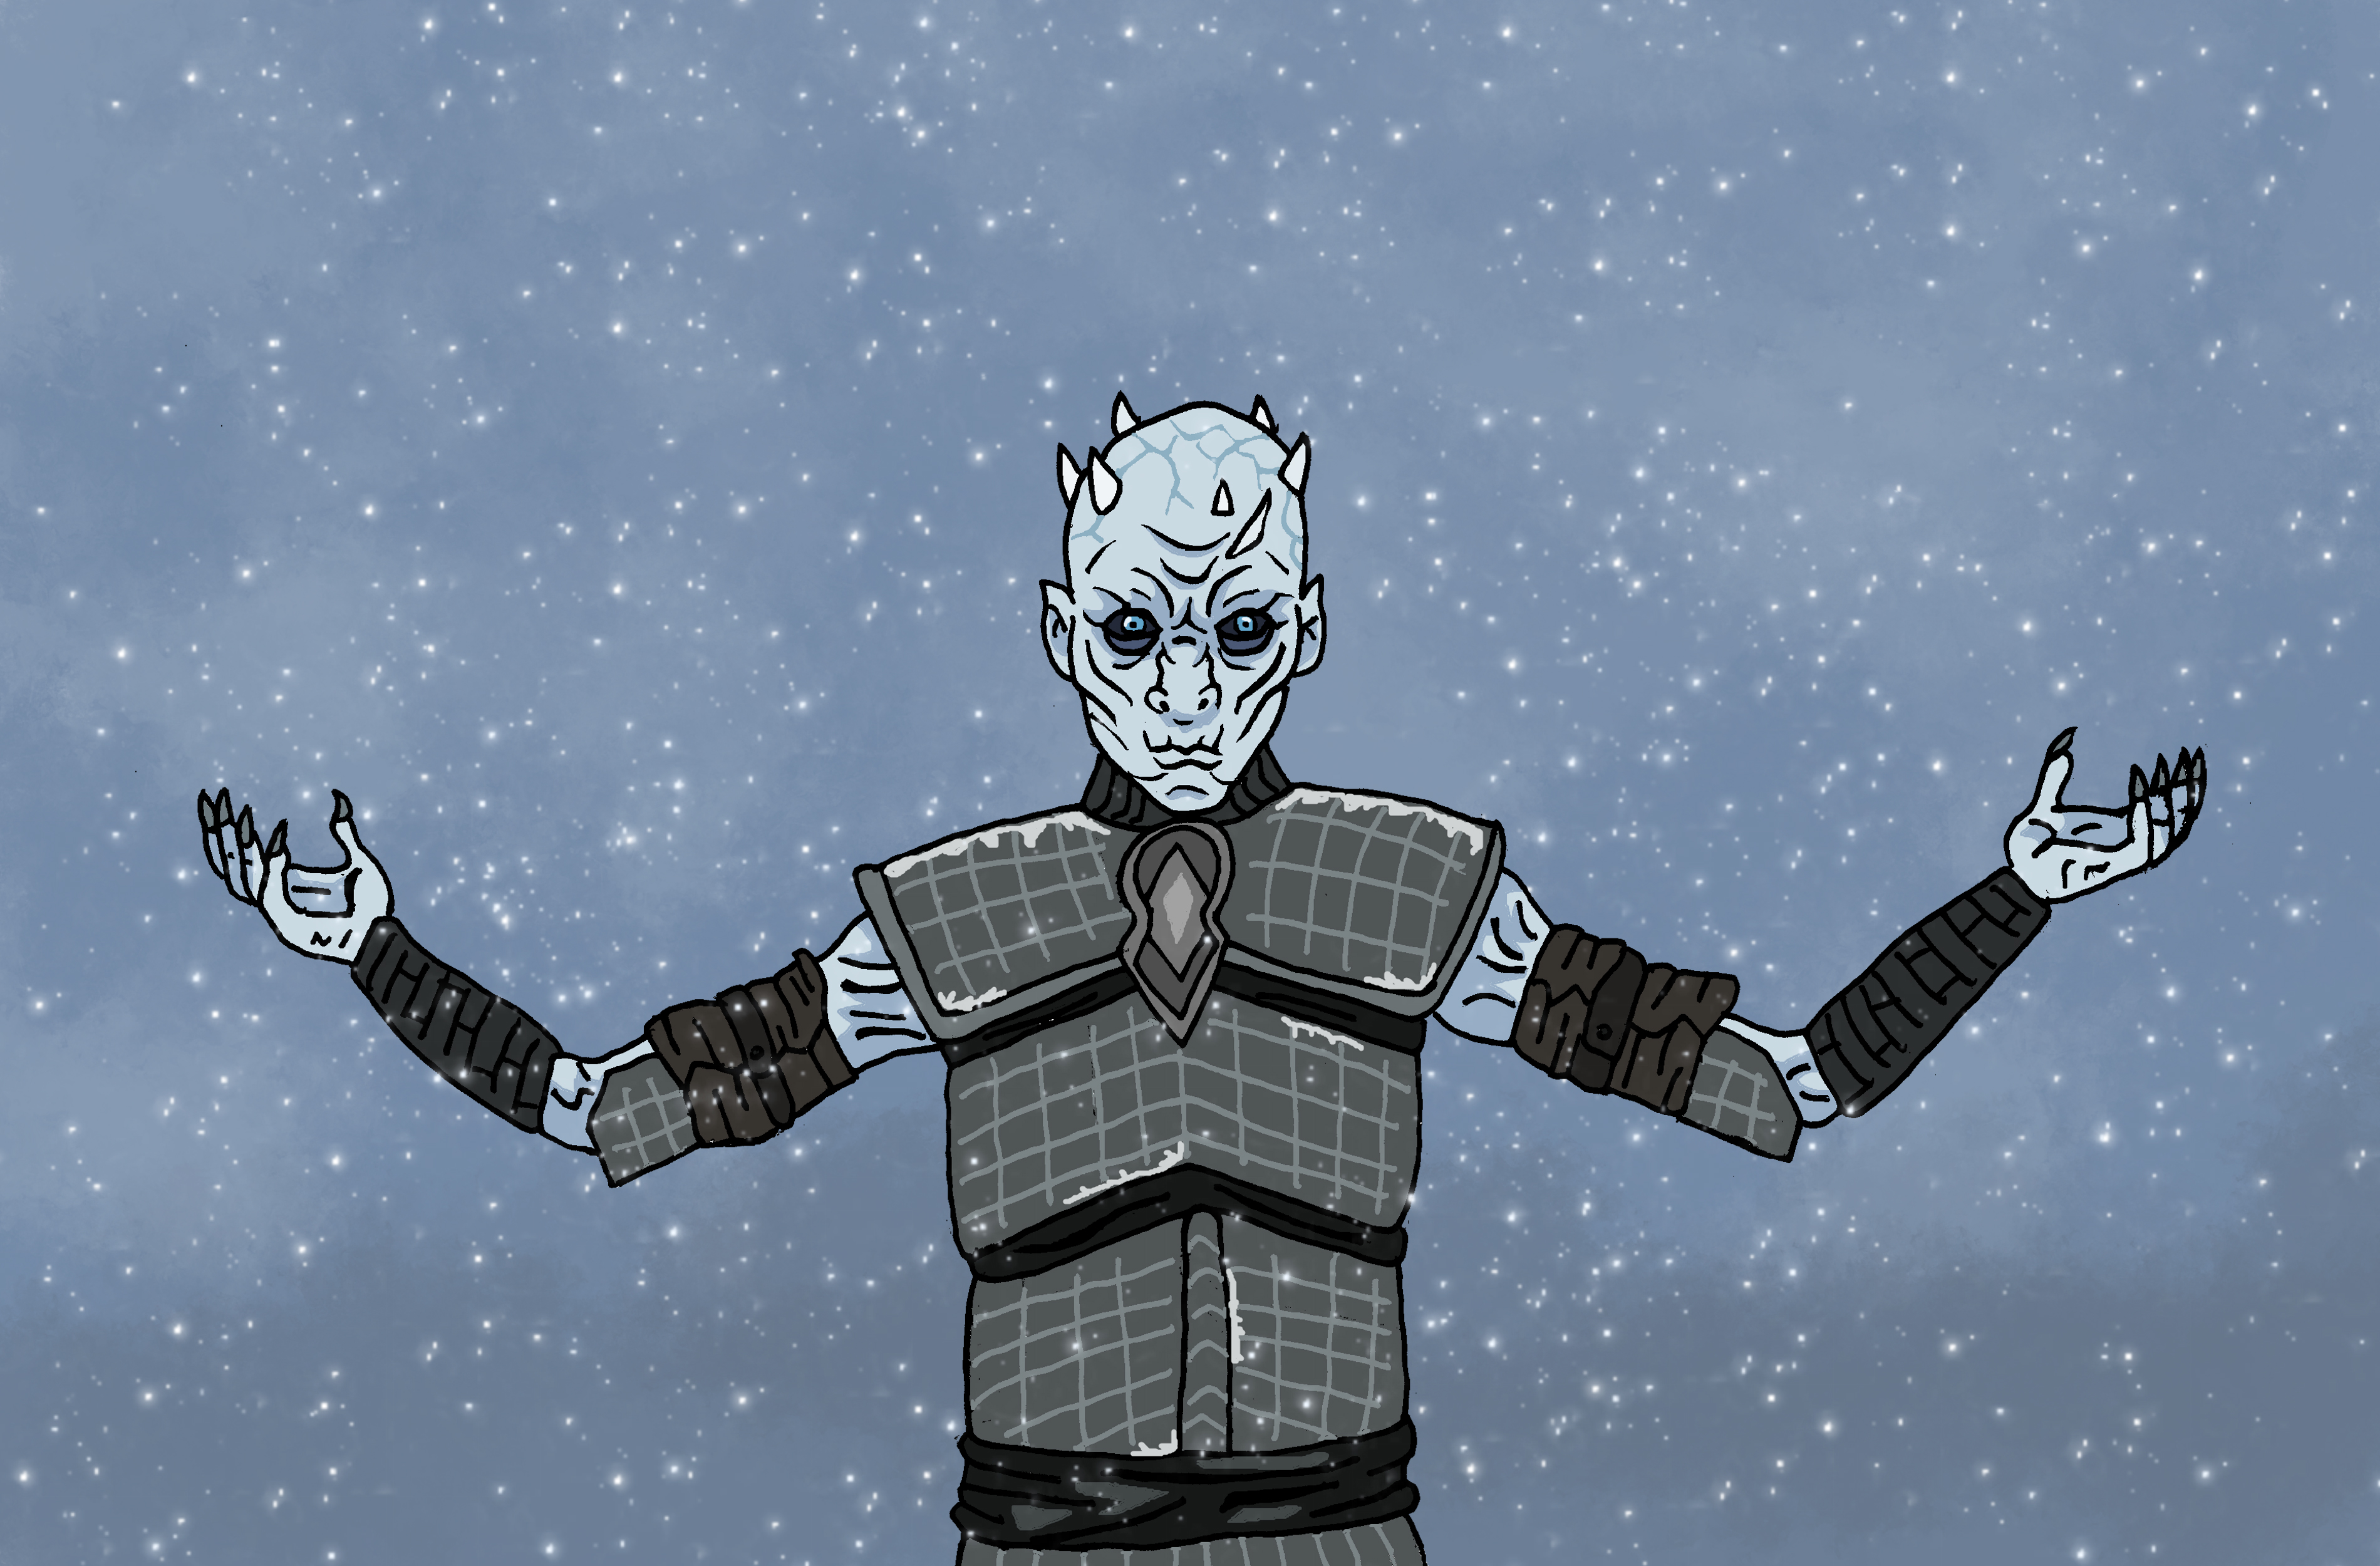 Game Thrones 2560x1440 Resolution Wallpapers 1440P Resolution